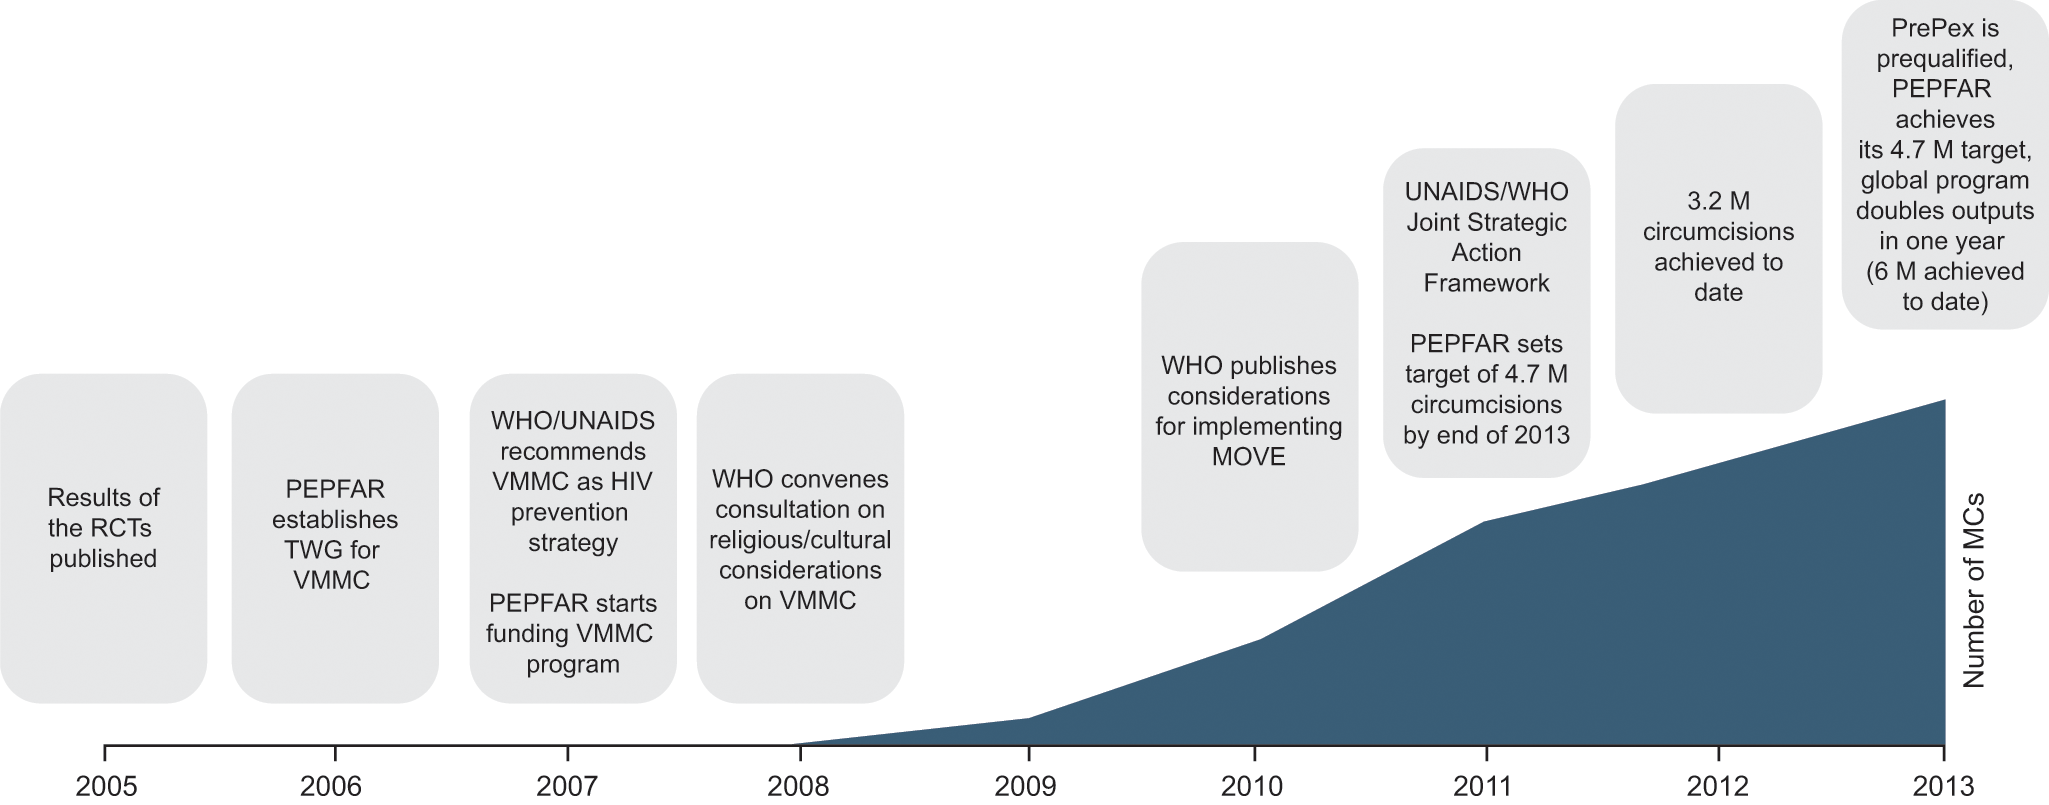 Timeline and key milestones of the voluntary medical male circumcision program in 14 priority countries.